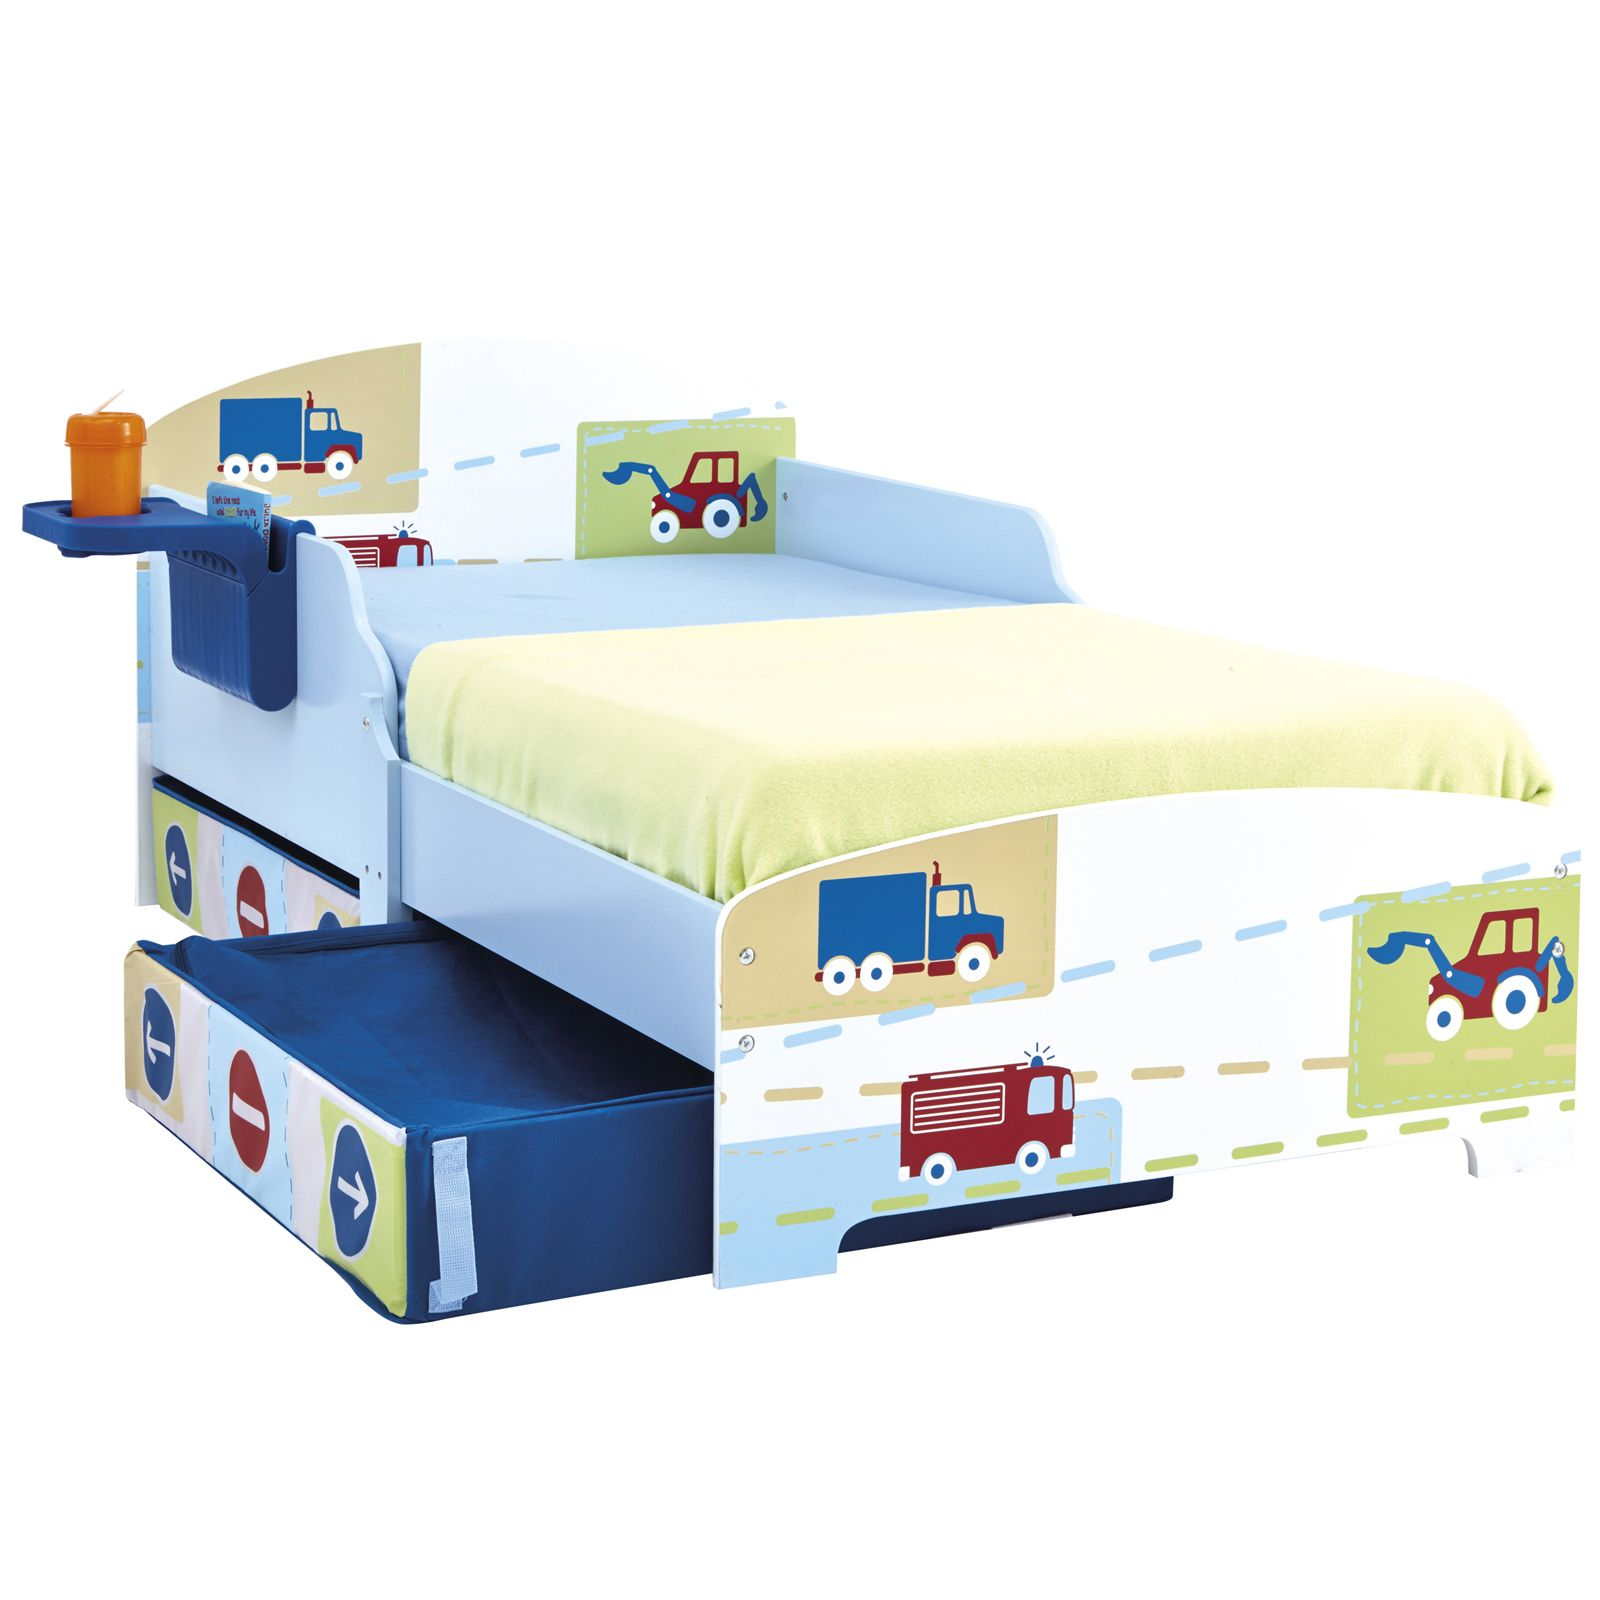 jungen trucks traktoren generic mdf kleinkind bett mit ablagefach ebay. Black Bedroom Furniture Sets. Home Design Ideas